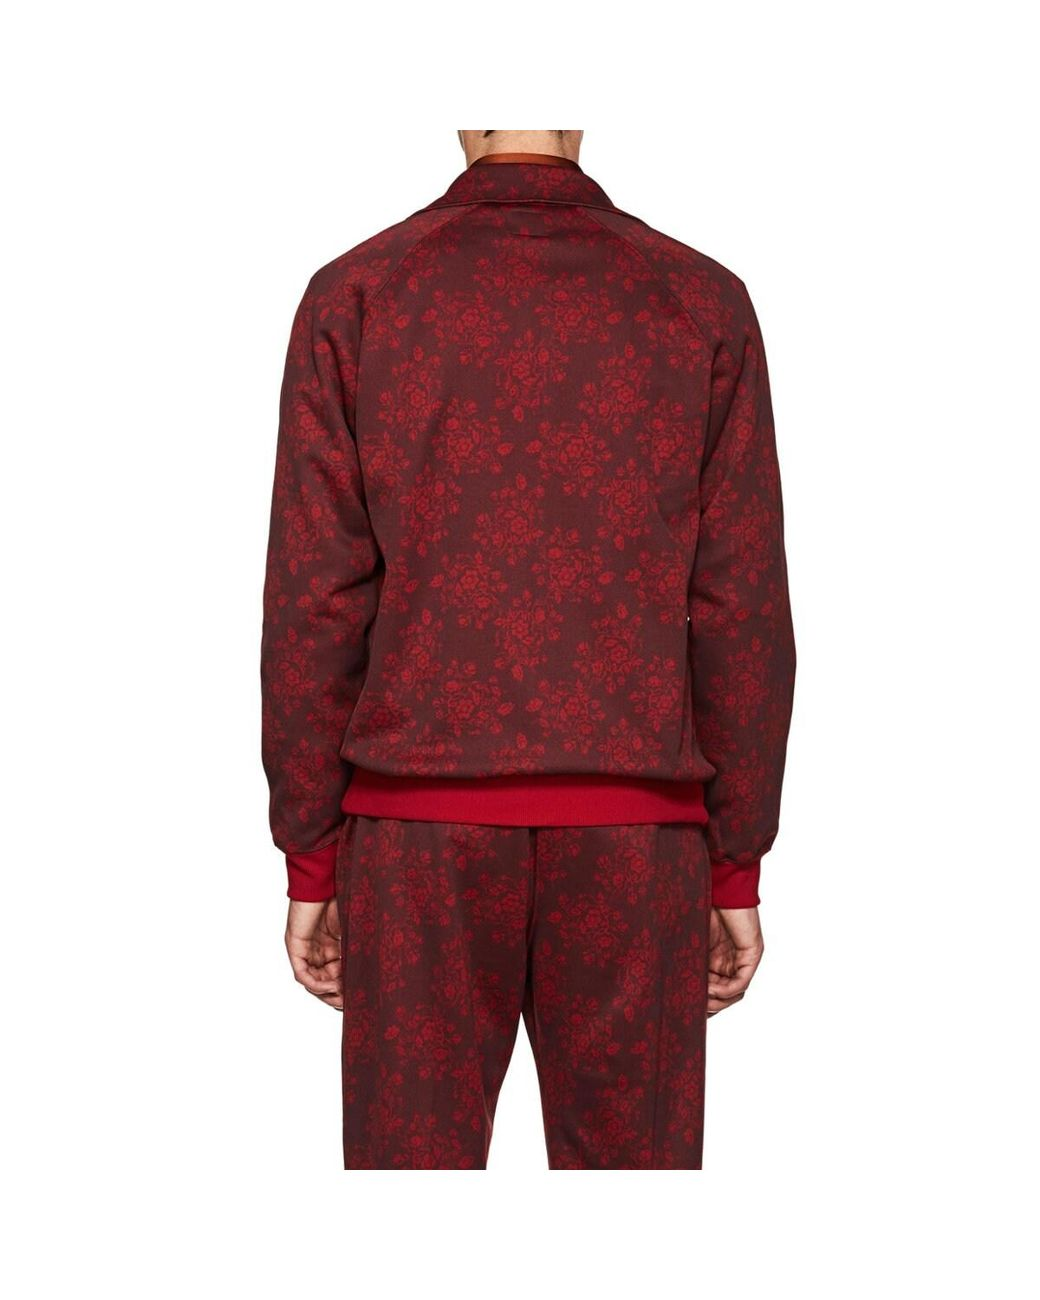 2590375551e5ba Needles Floral Jersey Track Jacket in Red for Men - Save 74% - Lyst